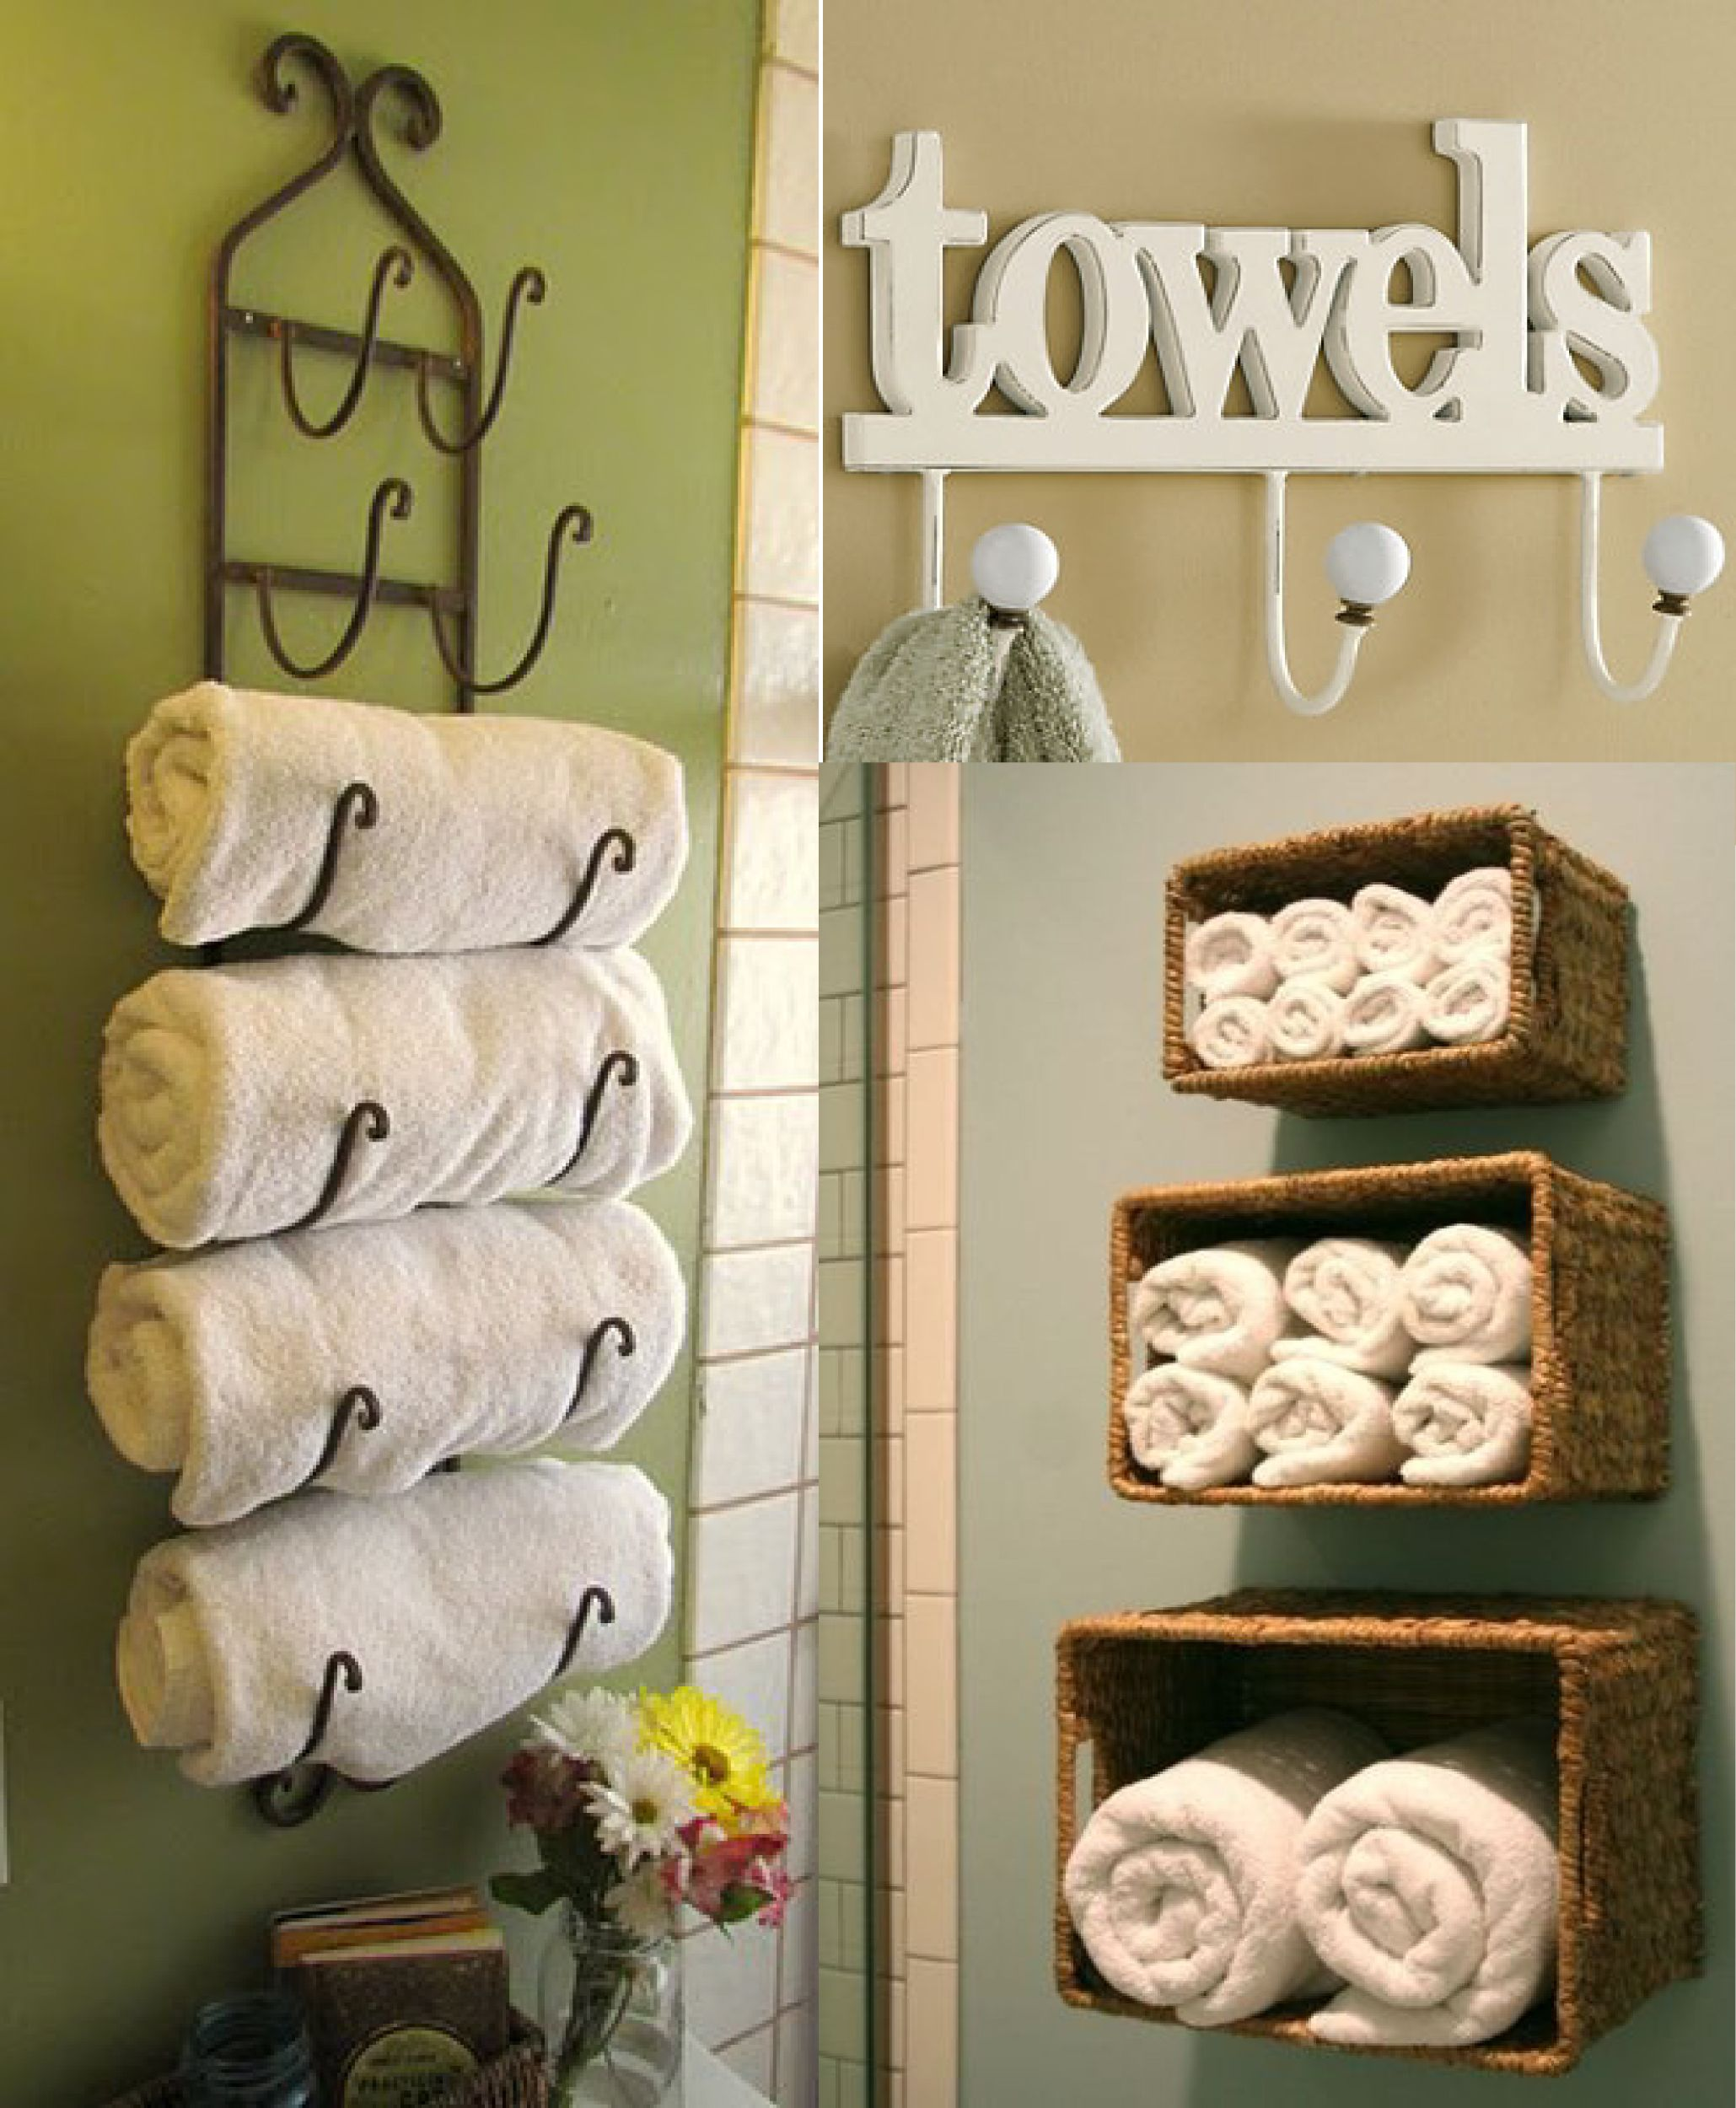 Bathroom wall storage baskets - Bathroom Interior Awesome Three Rattan Wall Basket Towel Storage And Antique Custom Towel Bar Inspiring Bathroom Accesories Design Ideas Fancy Towel Storage